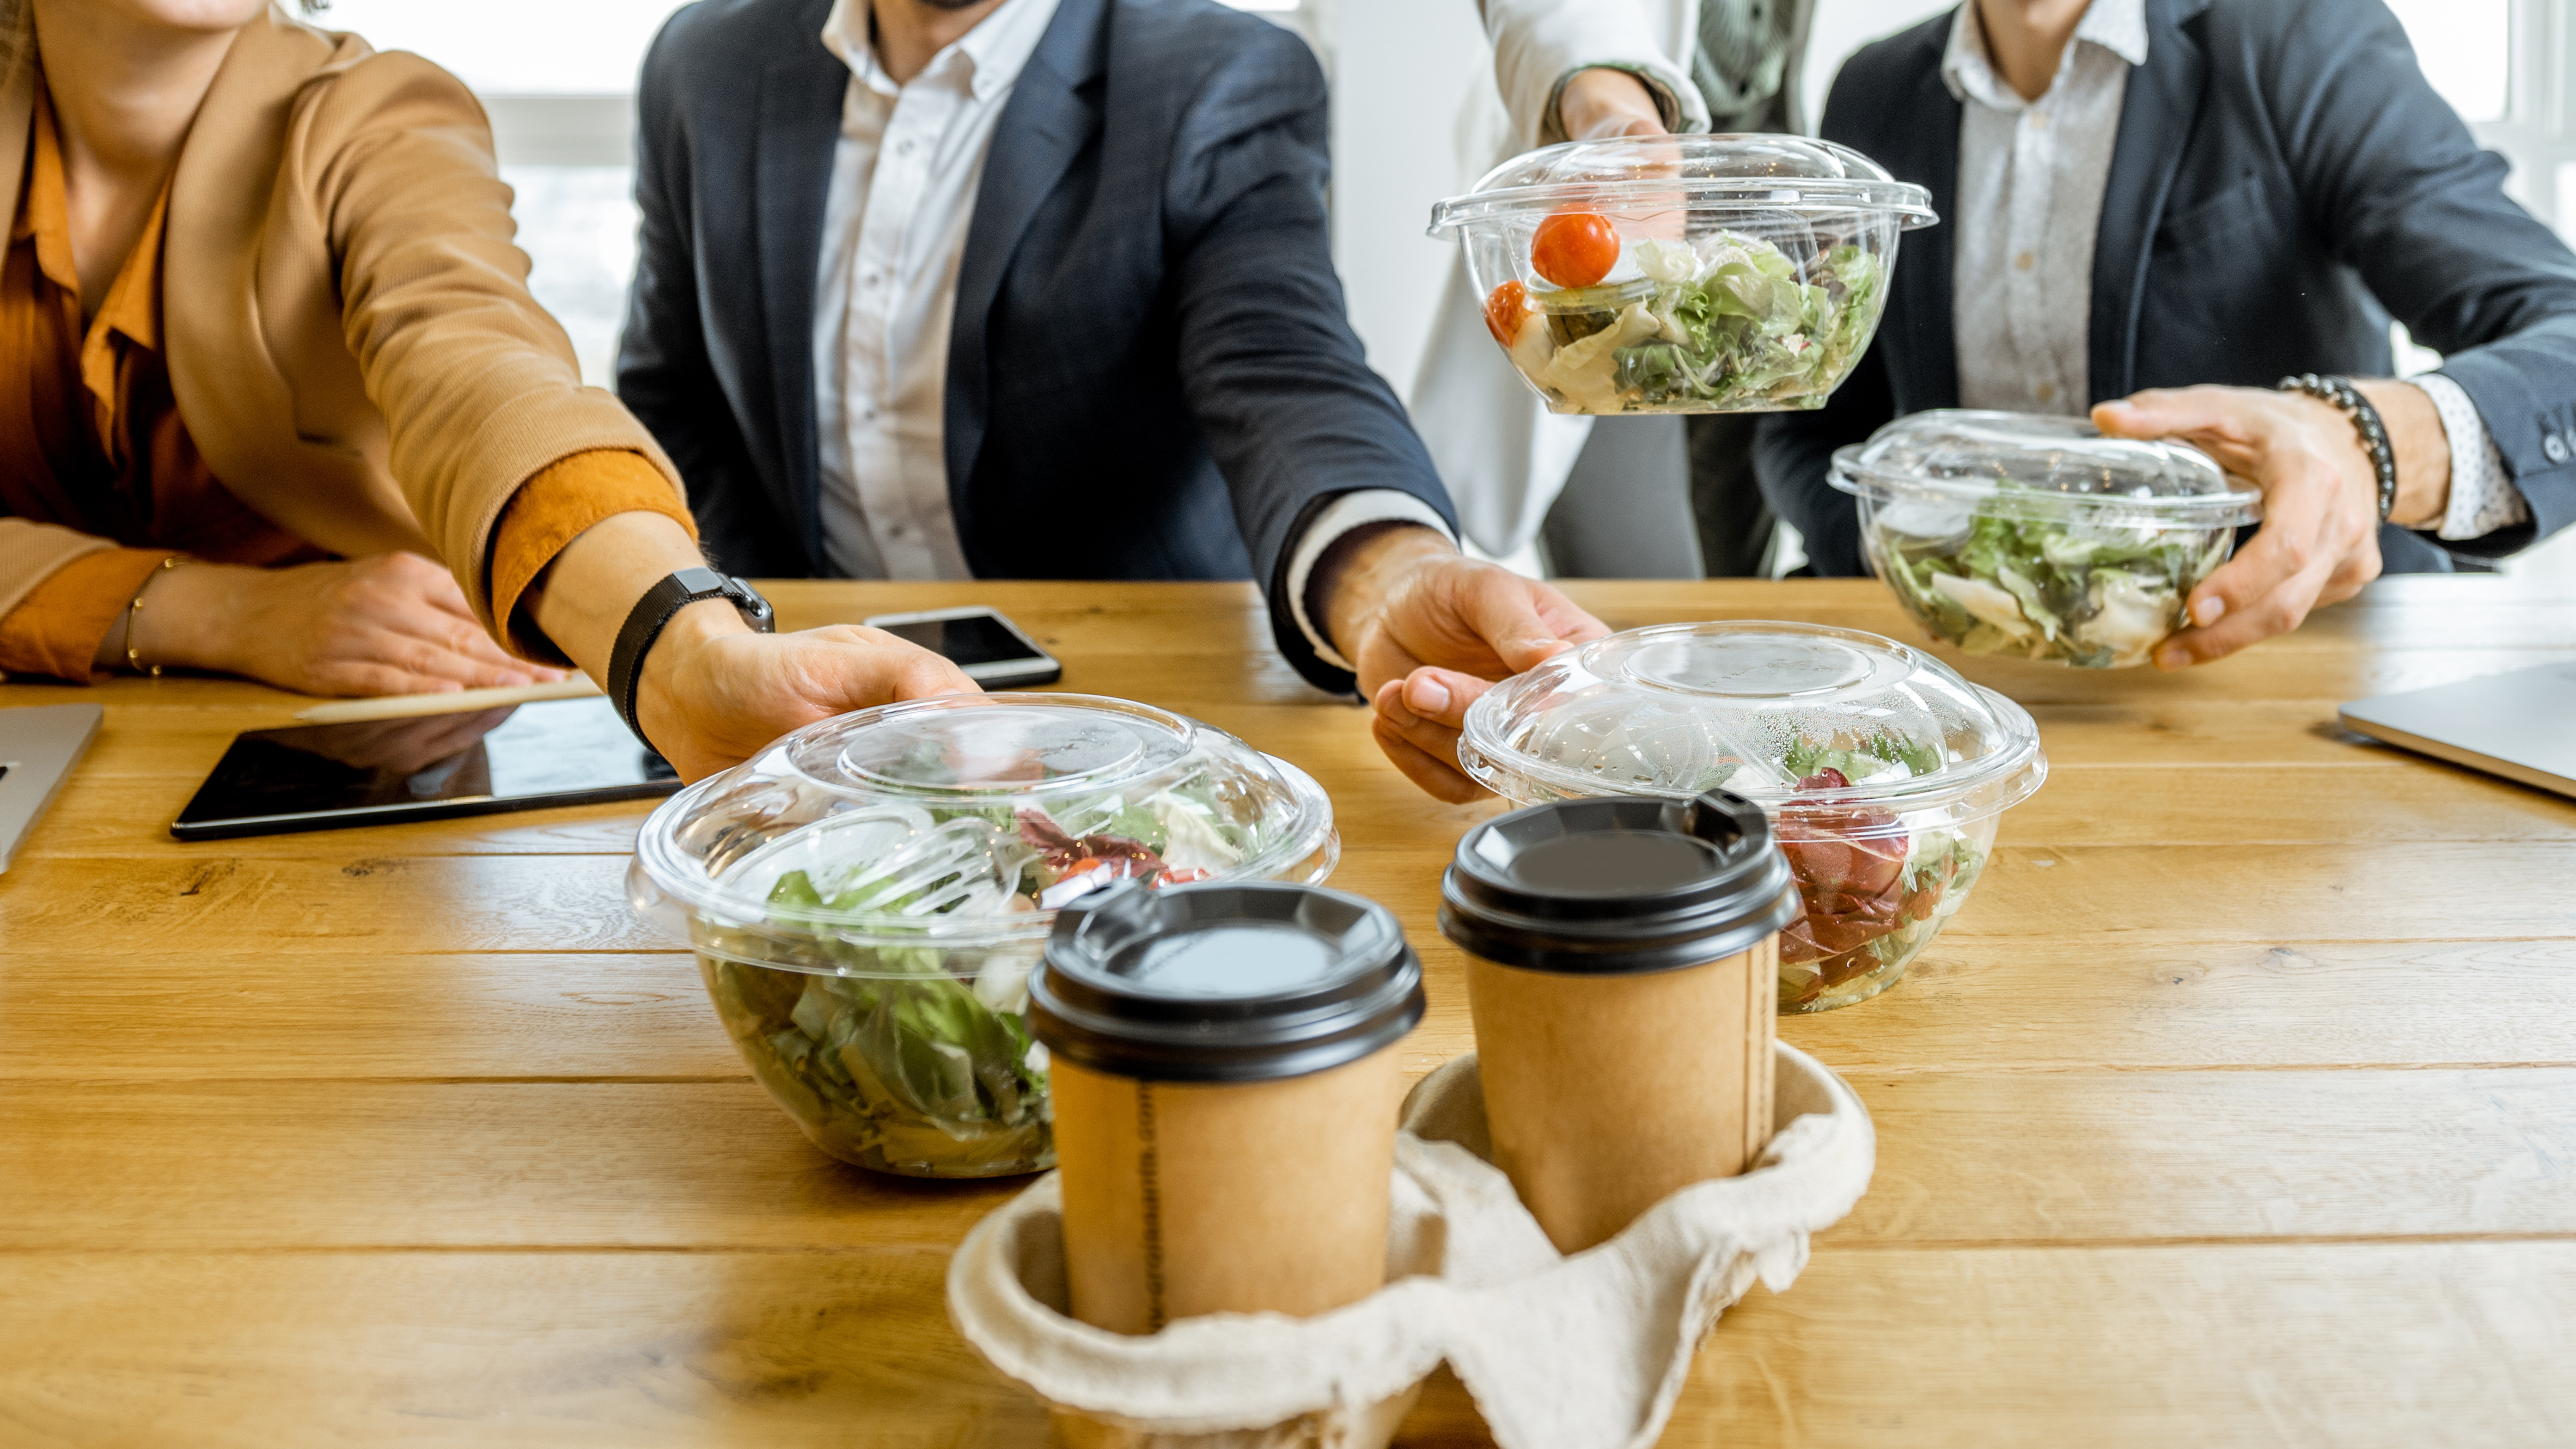 Take-Out and Coffee in workplace environment